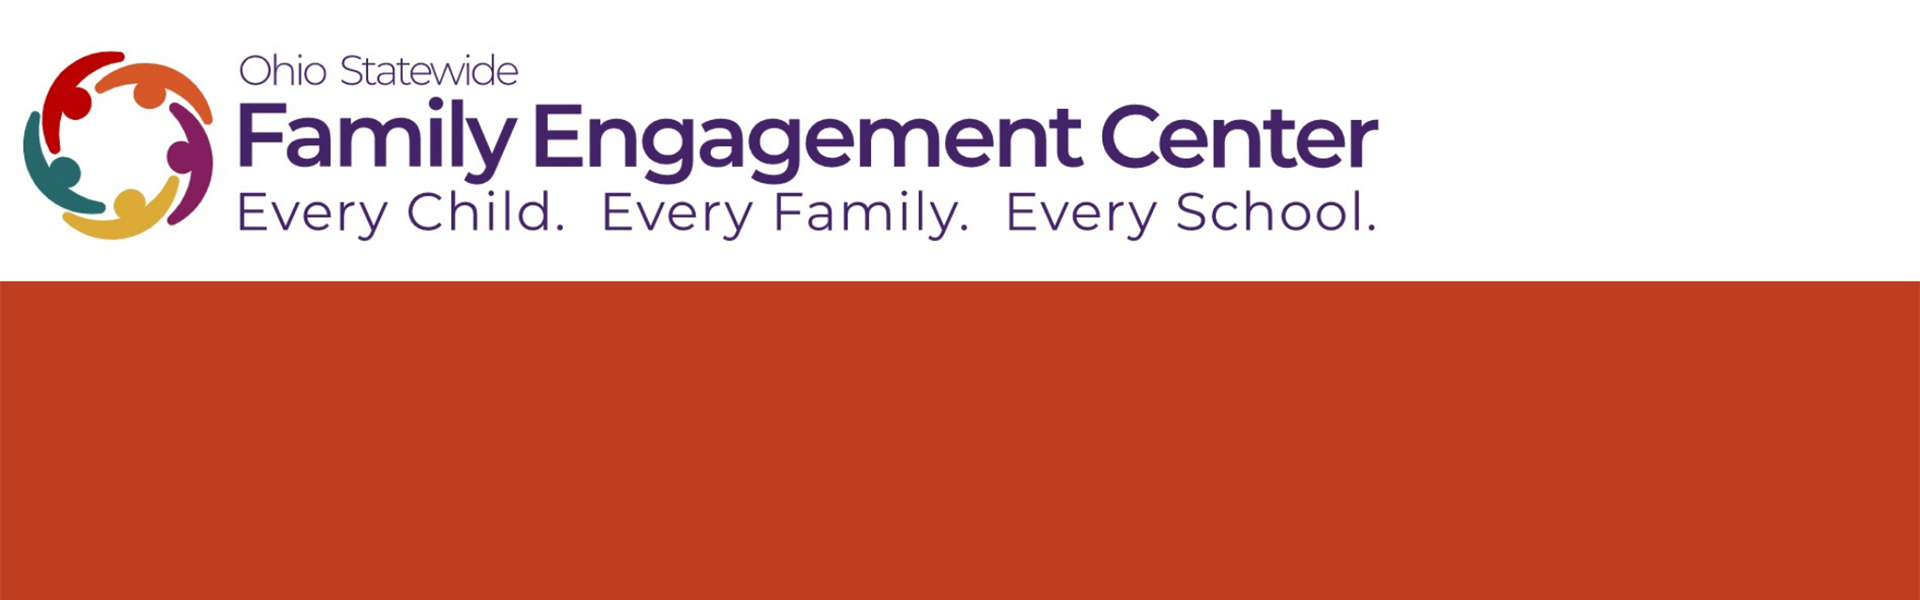 Banner reads Ohio Statewide Family Engagement Center - Every Child. Every Family. Every School.